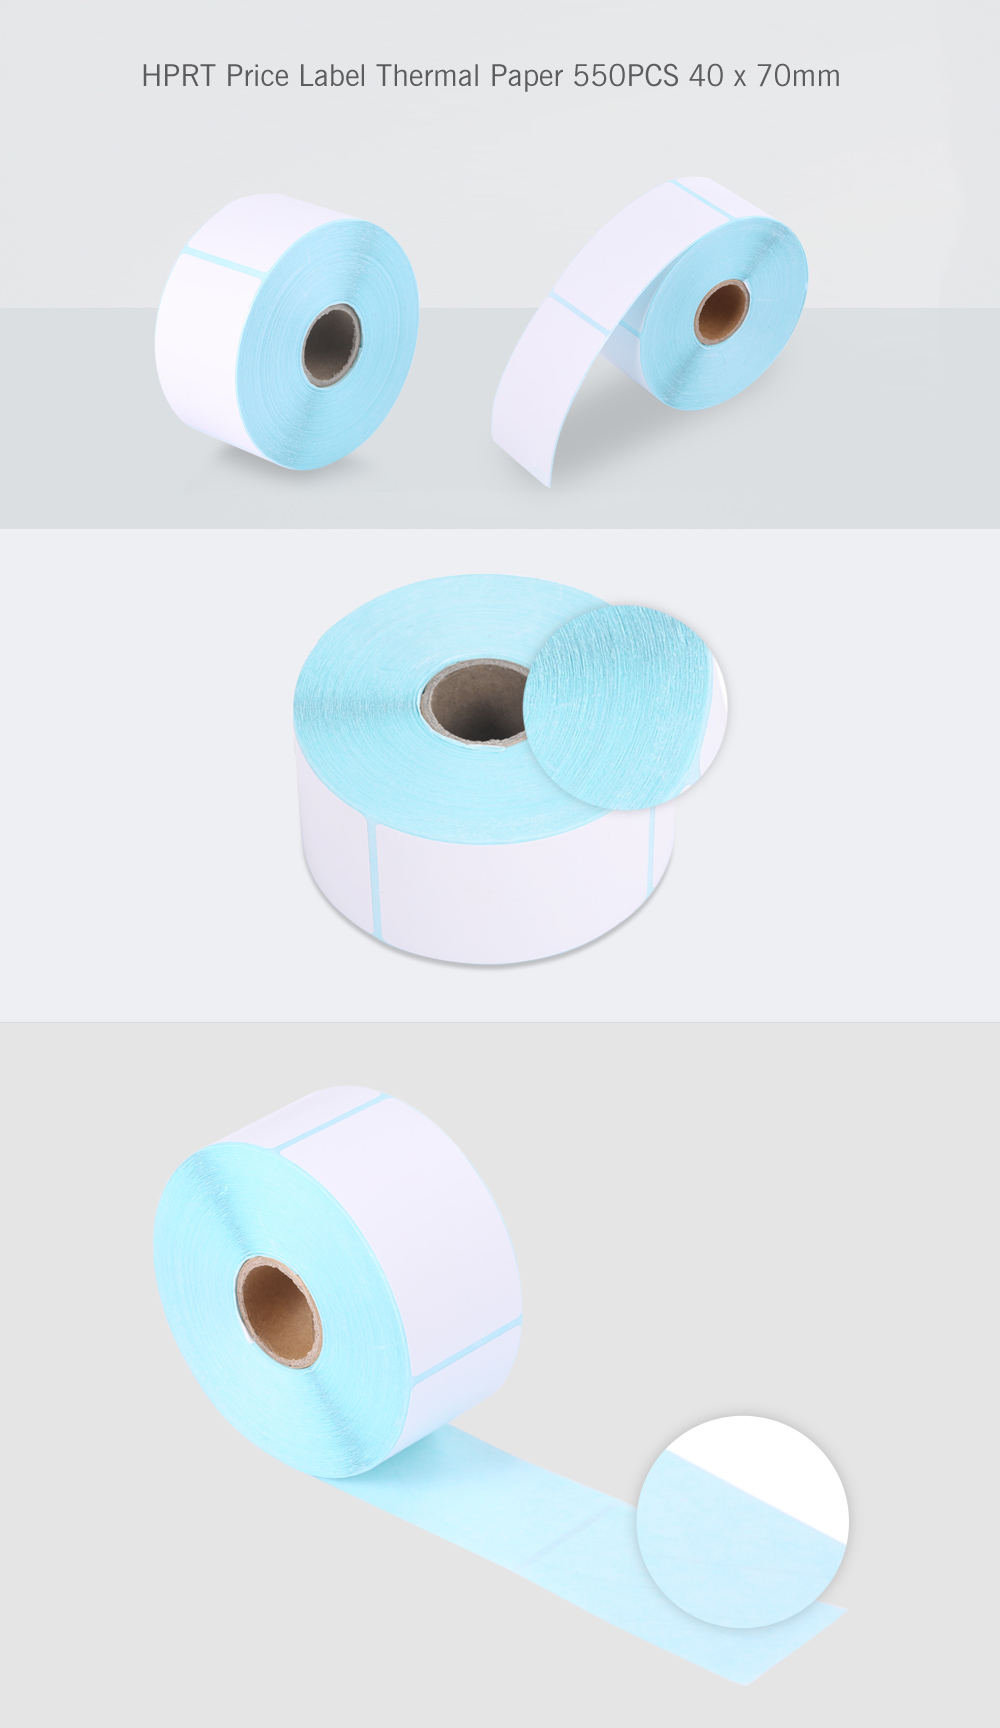 HPRT Thermal Label Paper Sticker Price Roll 550PCS 40 x 70mm